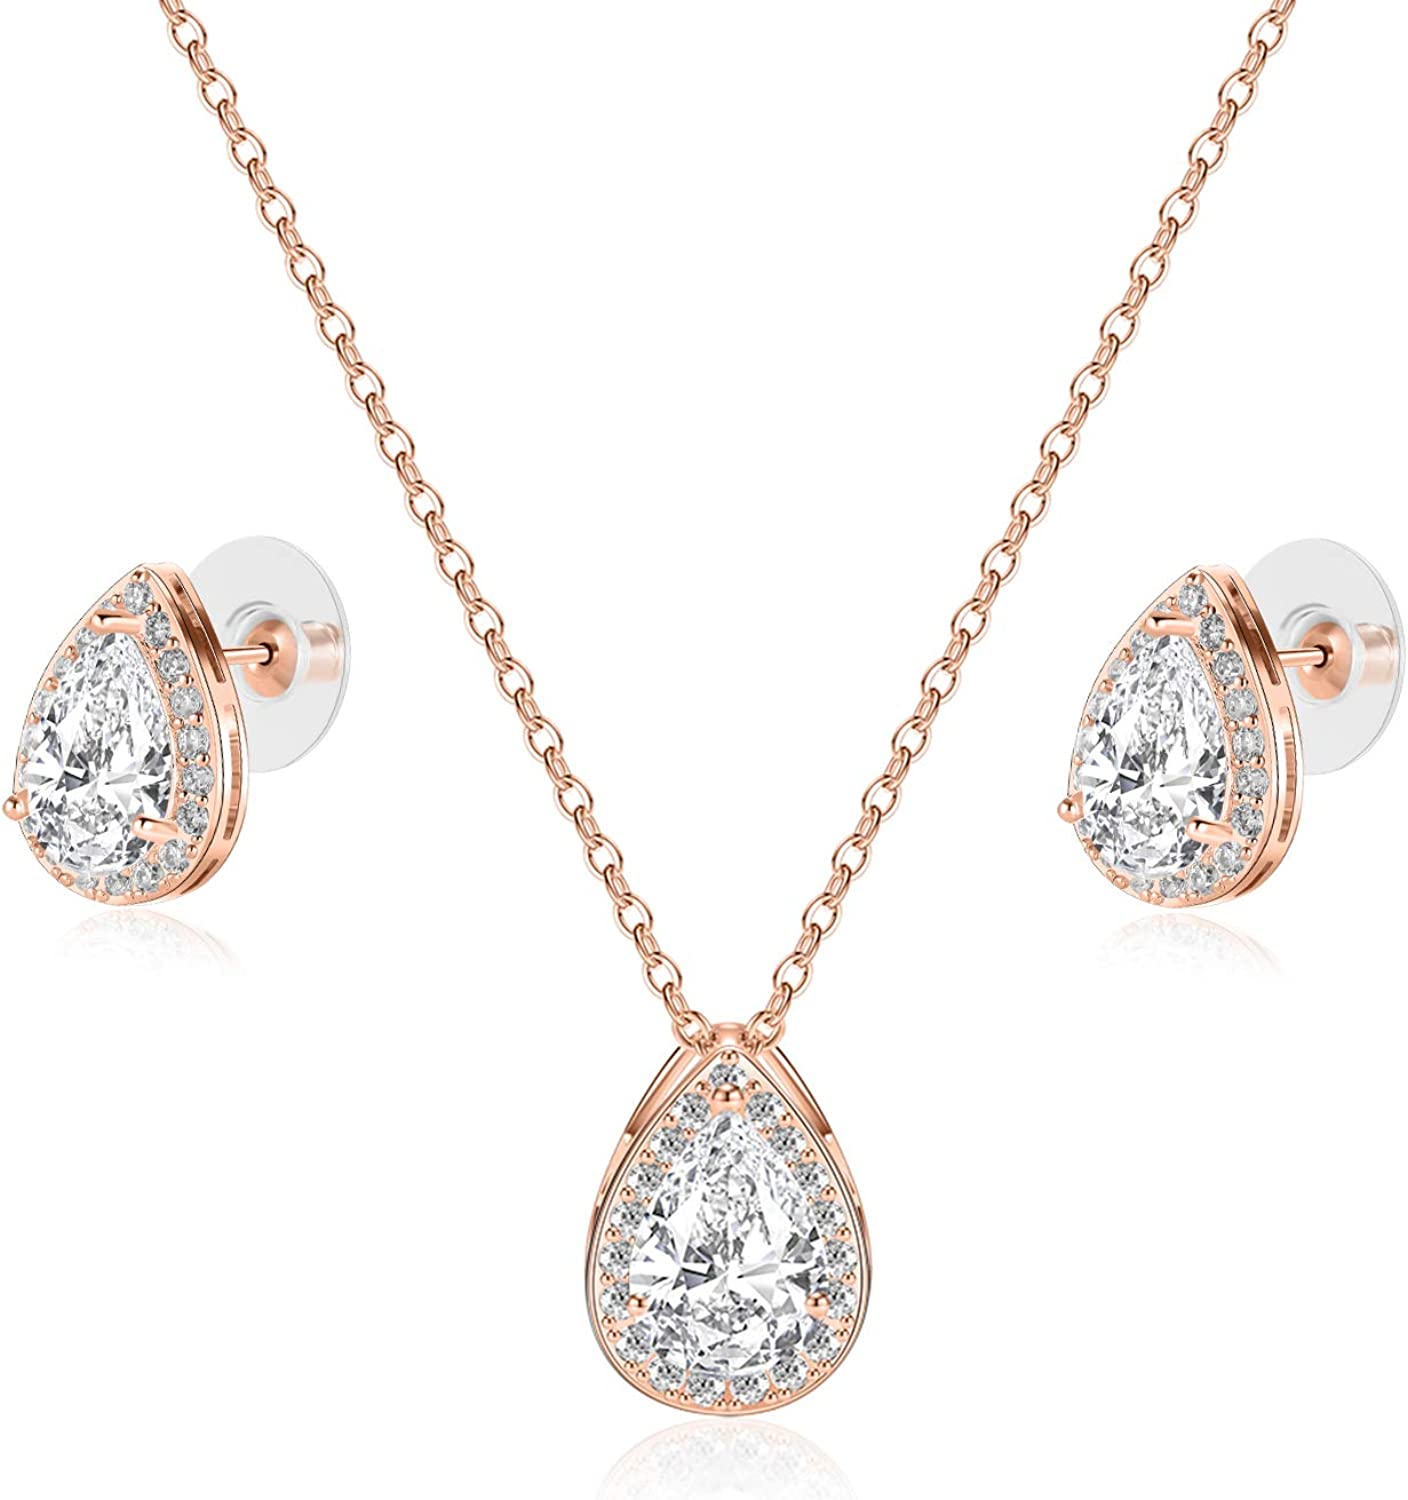 CZ Teardrop Necklace and Stud Earrings Set 14K White Gold Plated Wedding Jewelry for Bridal